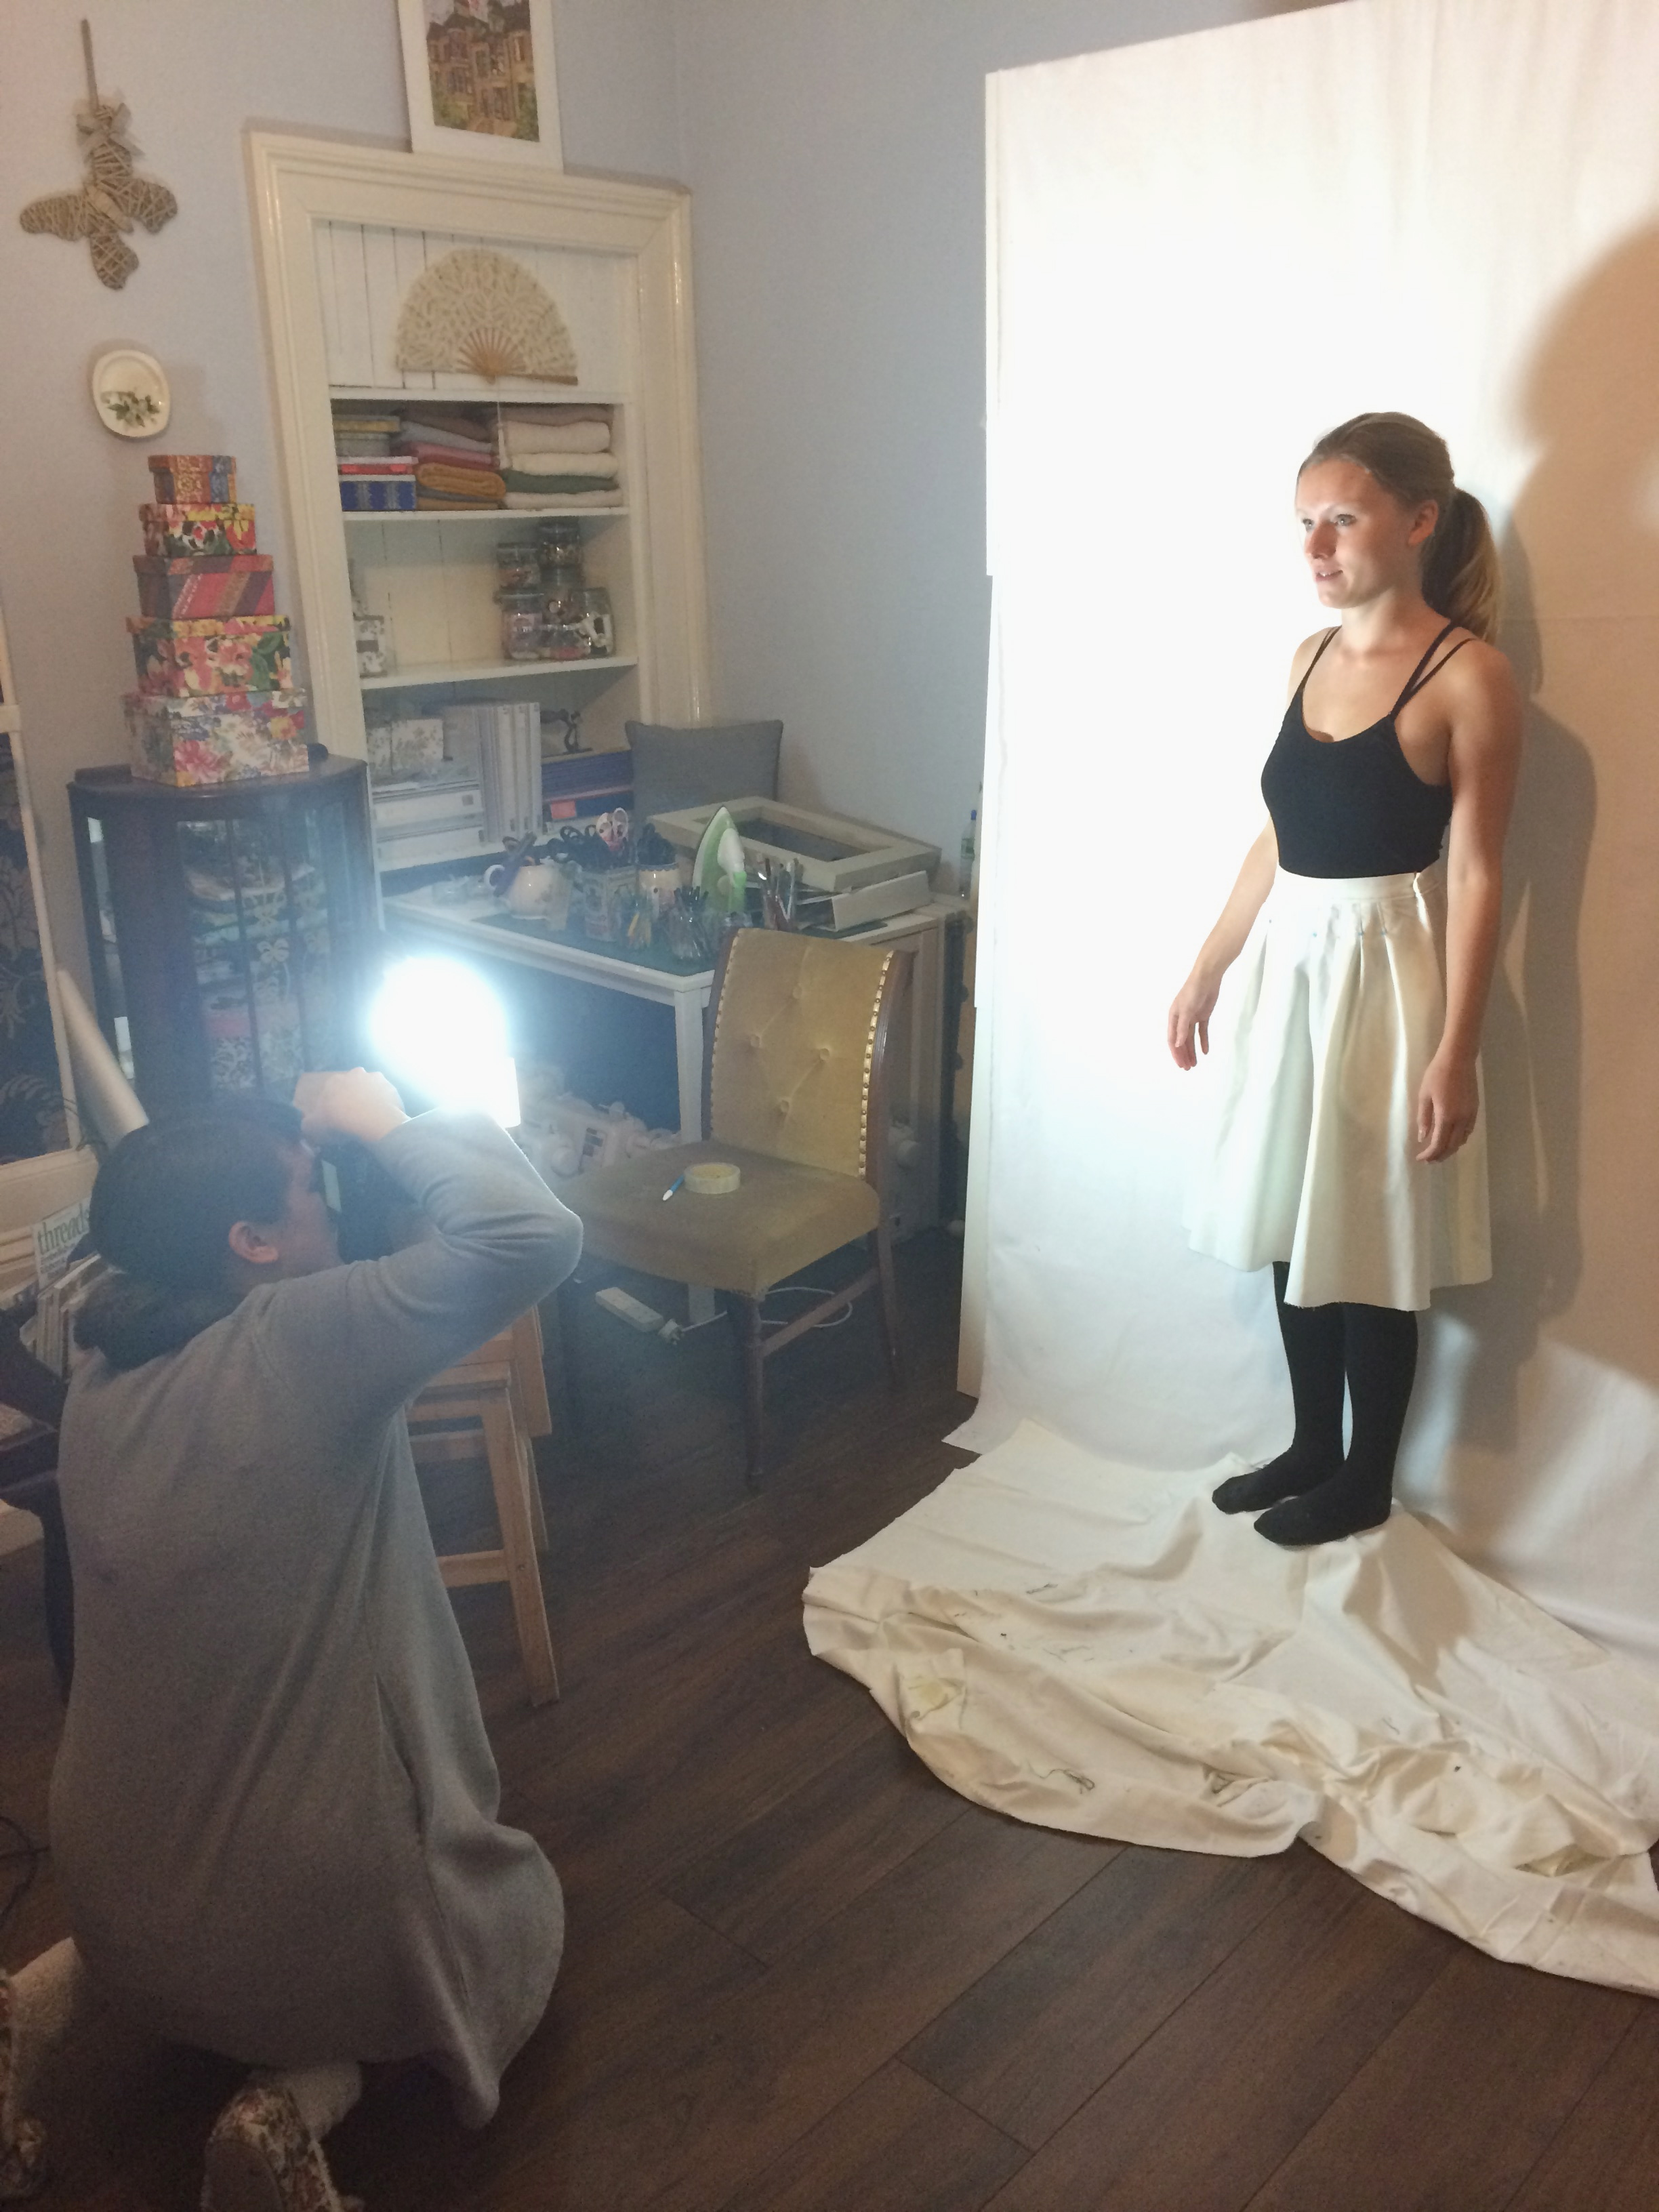 Photographing Naomi in her toile for one of the first posts.